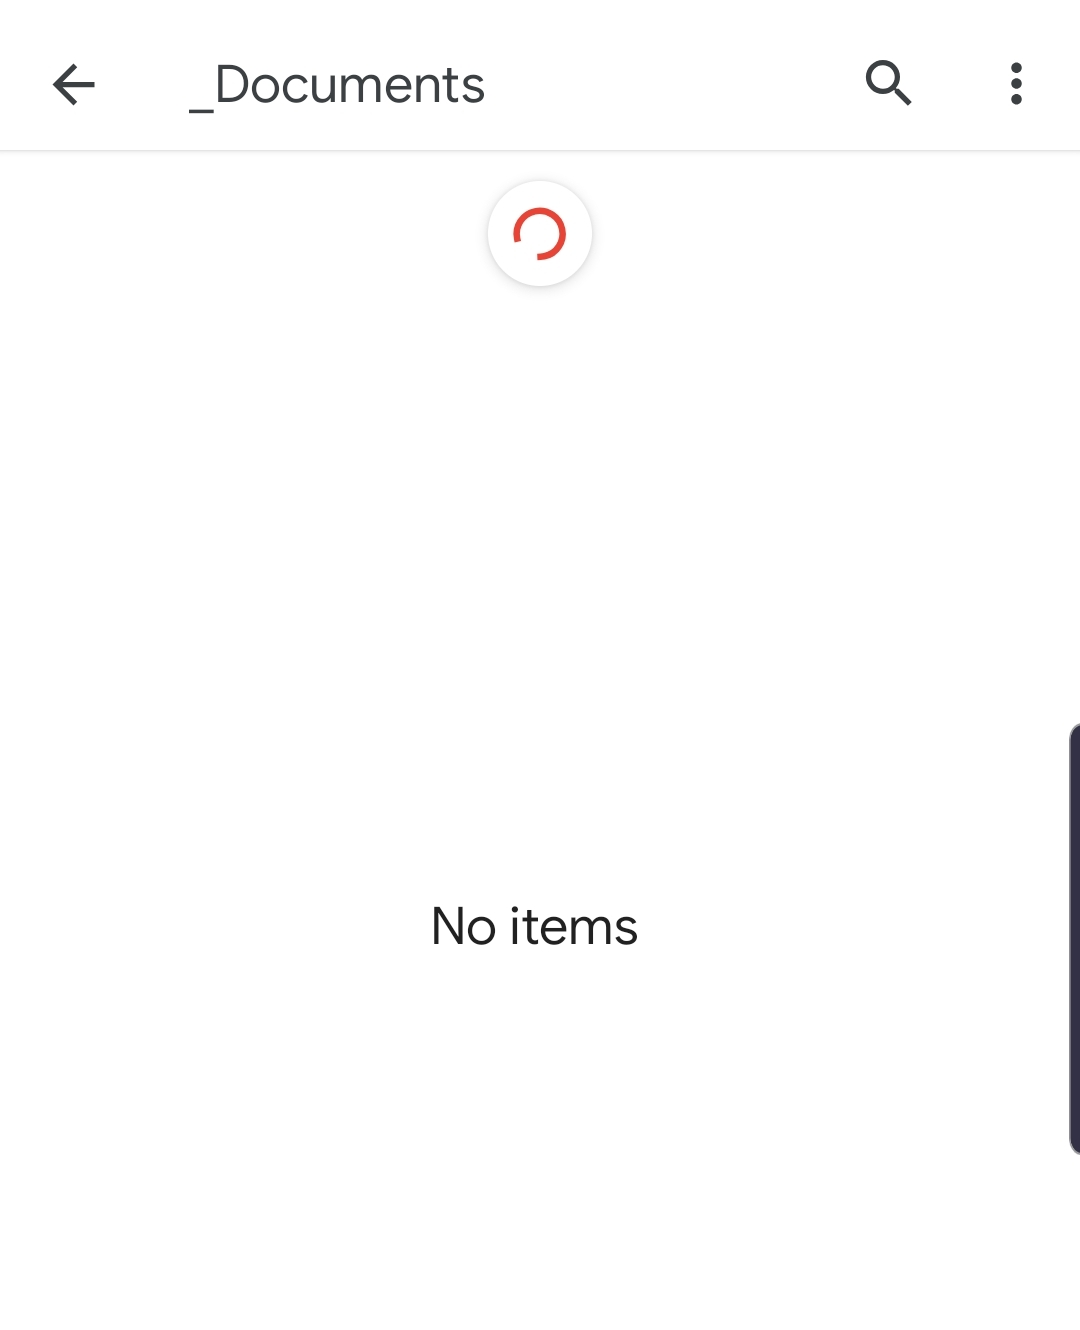 Galaxy S10, new files not showing unless you clear app data